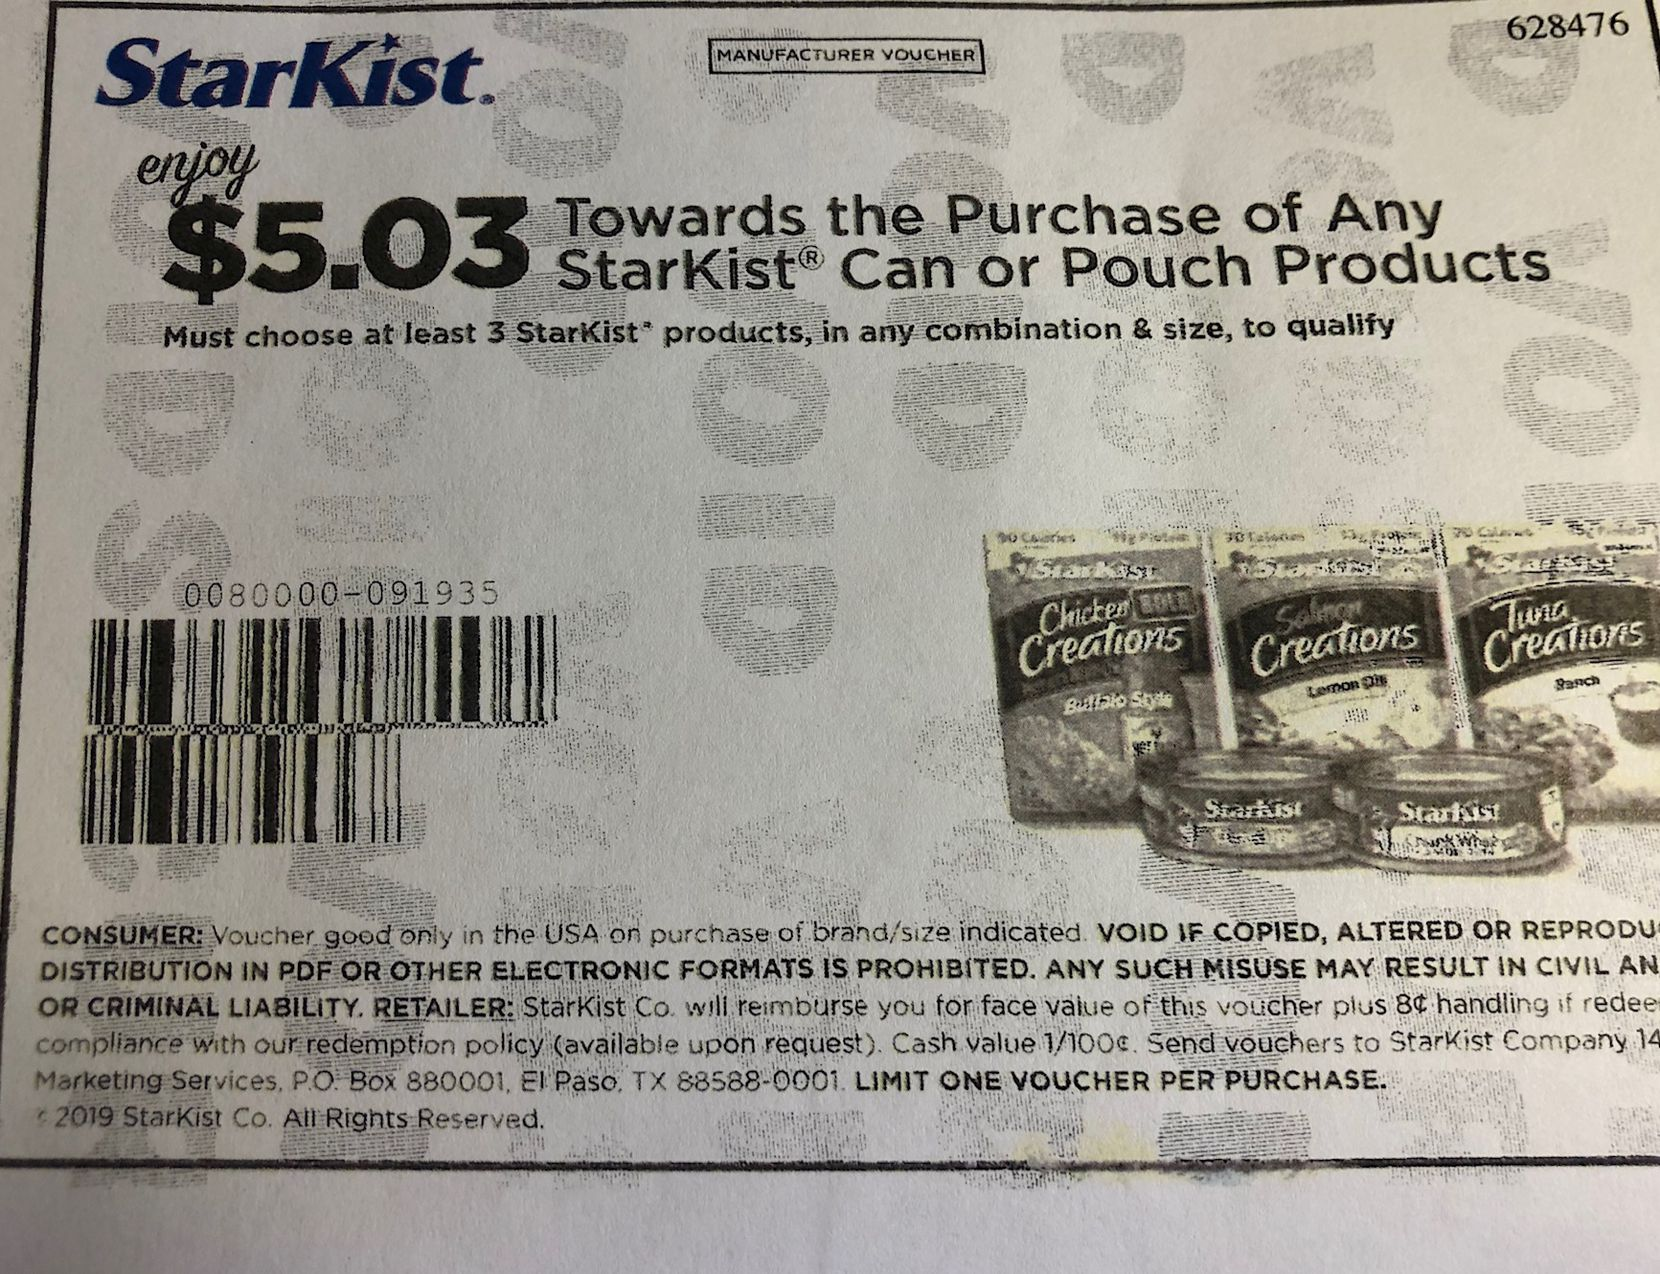 Took almost five years, but coupons from a class-action lawsuit began arriving in the mail.